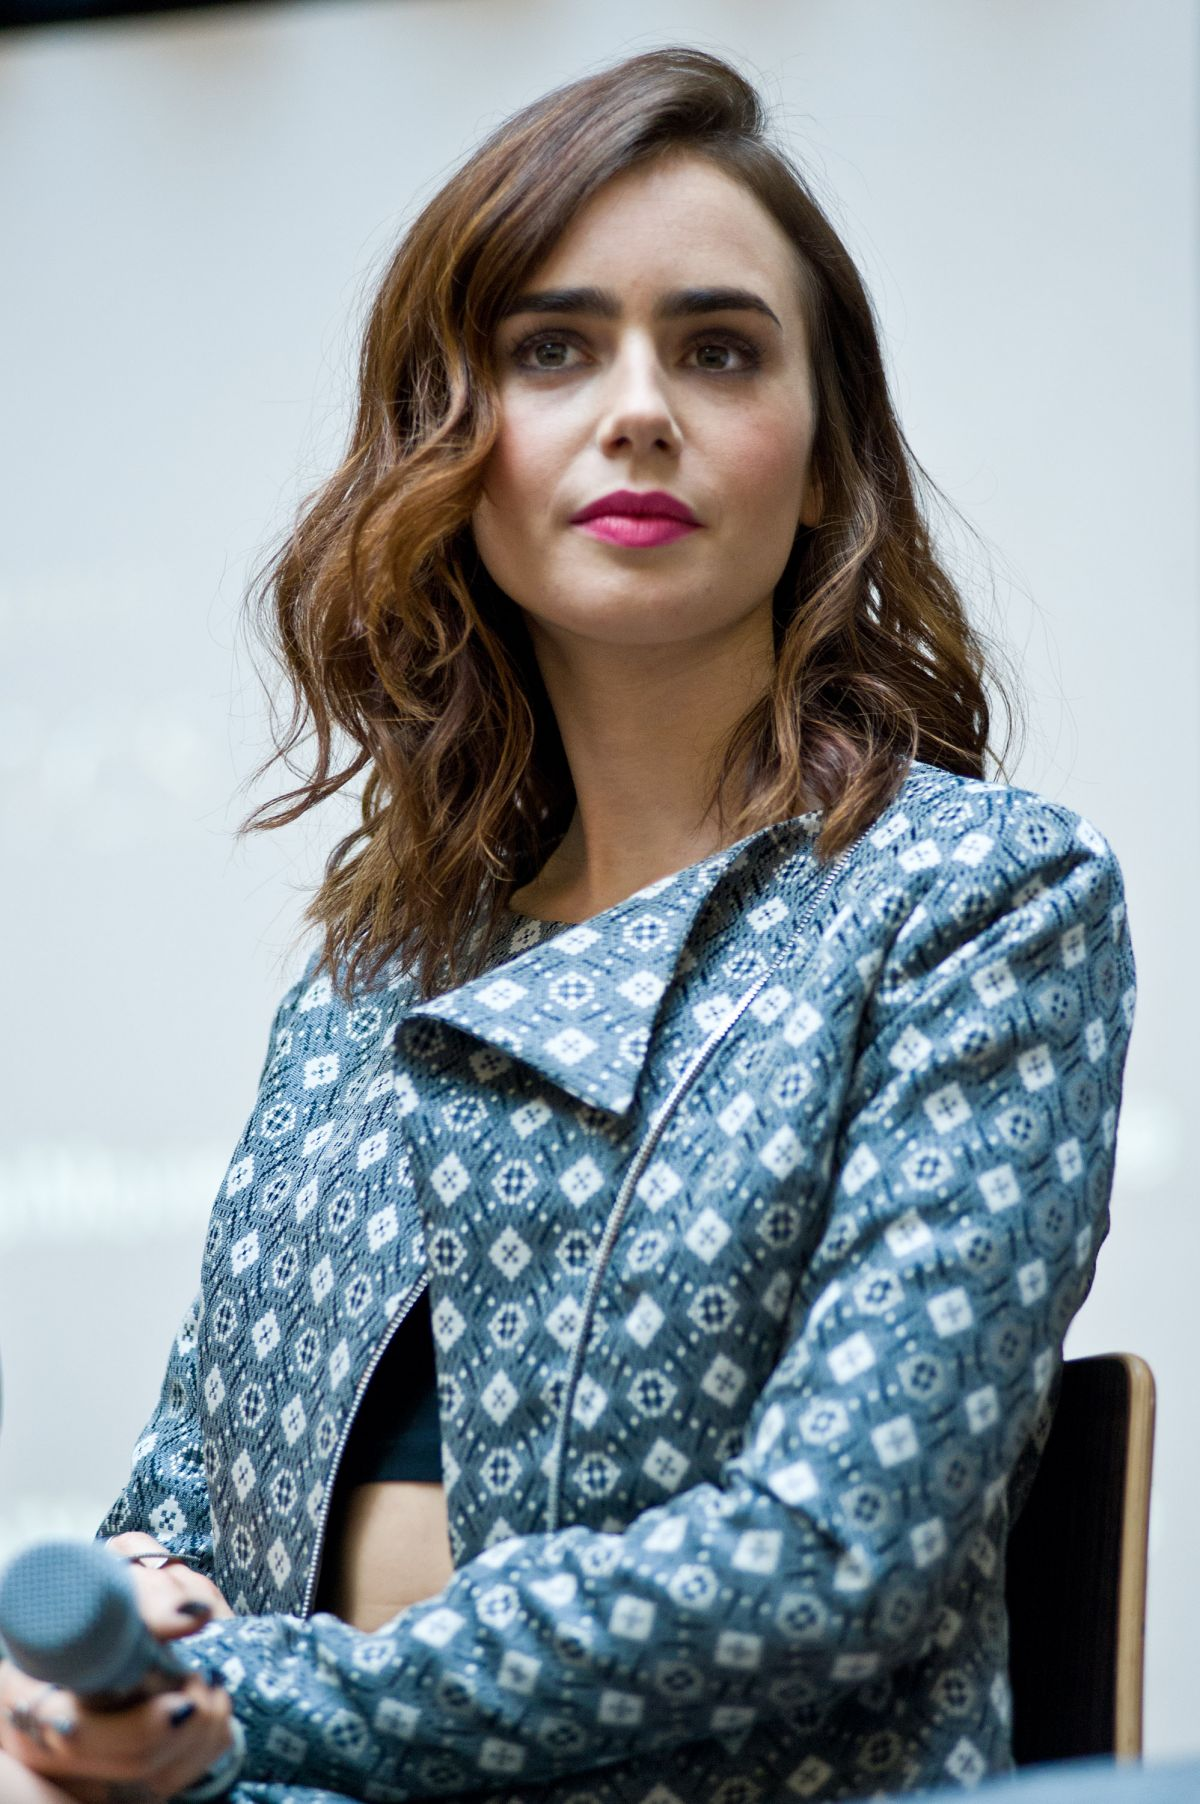 Lily Collins At Mall Tour In Chicago